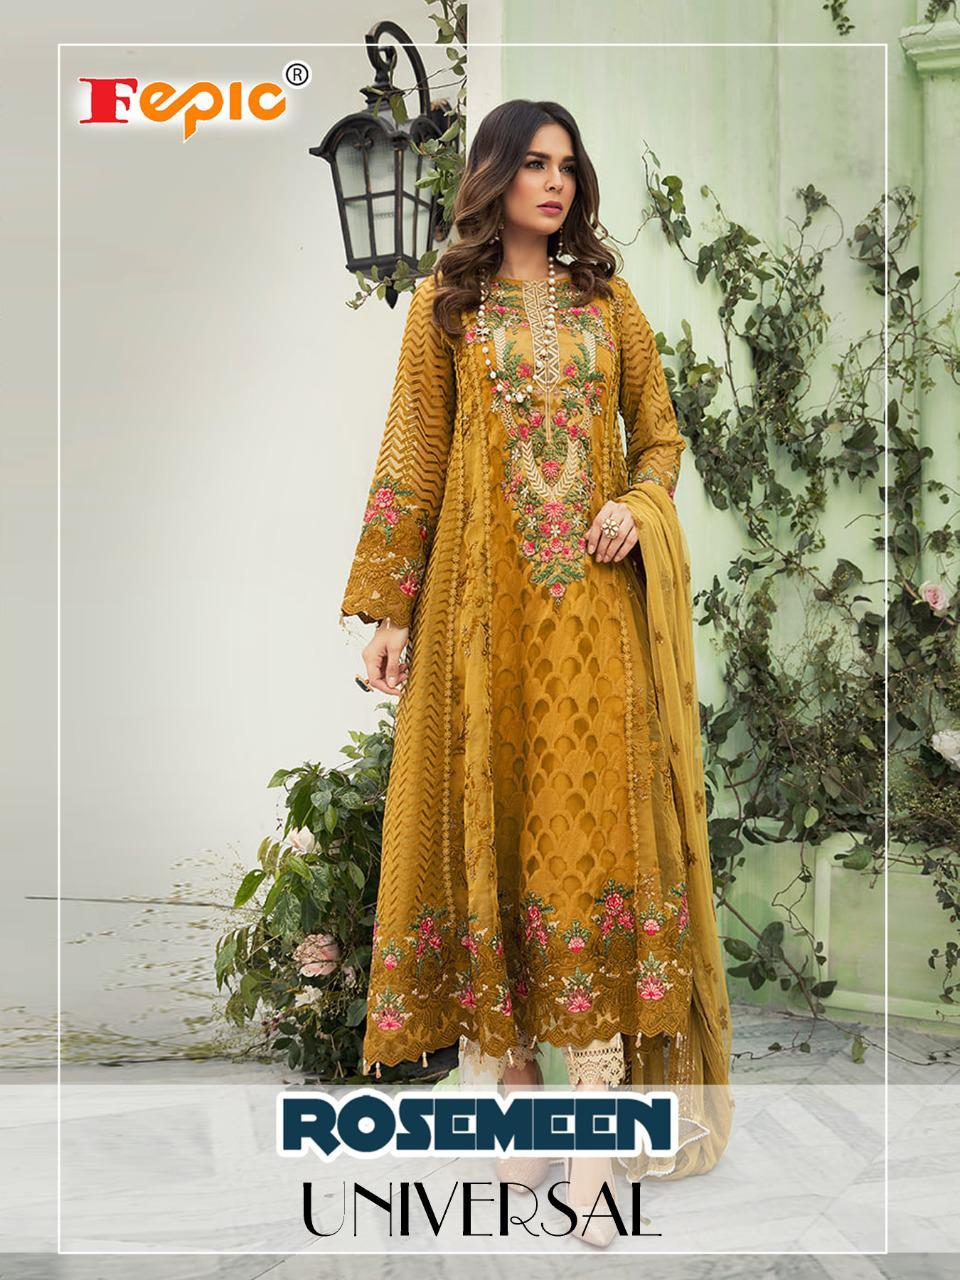 Fepic Rosemeen Universal Fox Georgette Occasional Wear Suits Wholesale